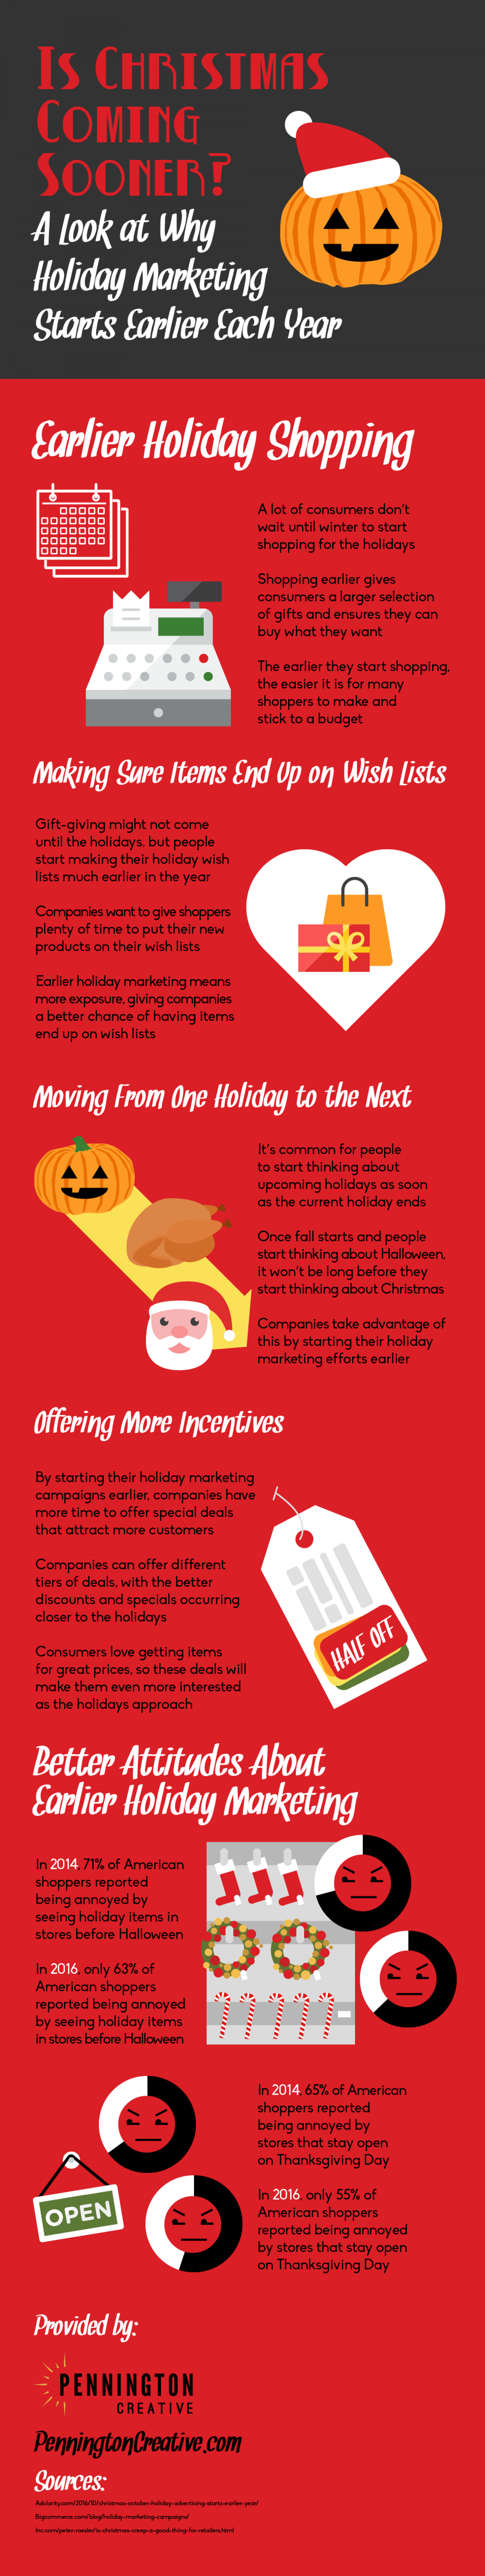 Is Christmas Coming Sooner? A Look at Why Holiday Marketing Starts Earlier Each Year Infographic